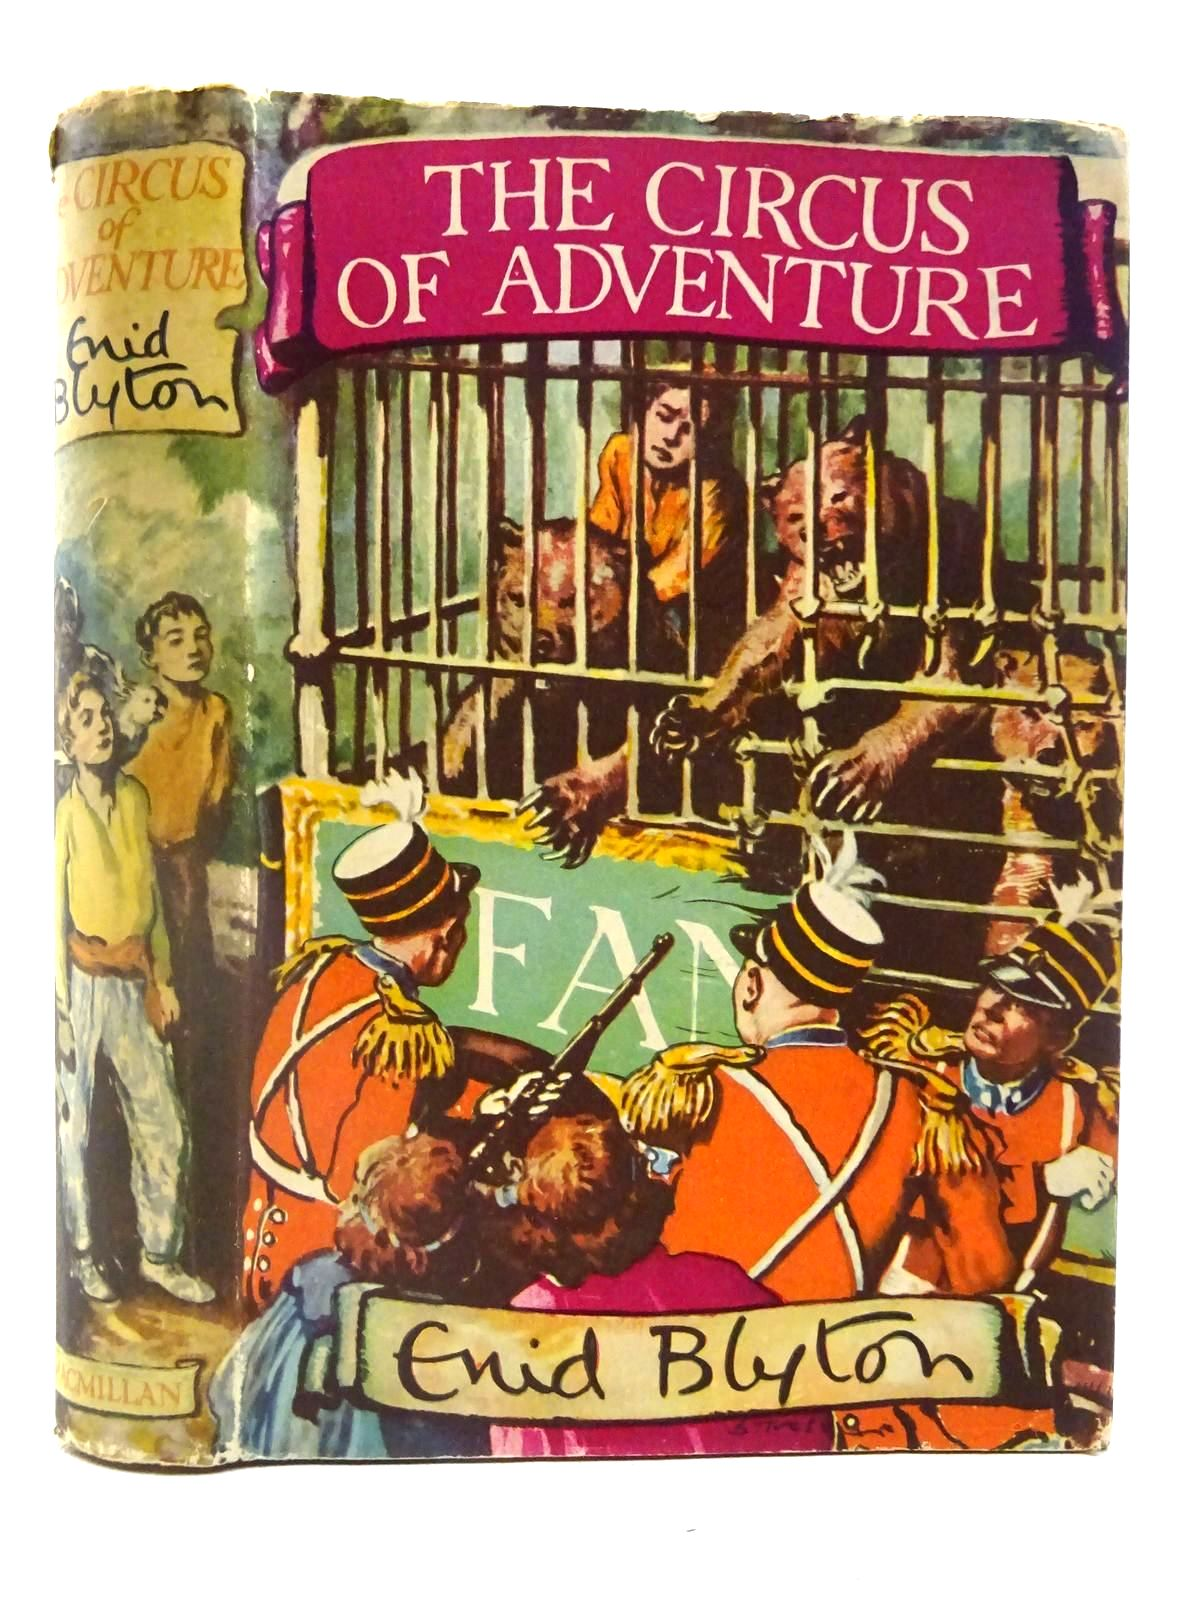 Photo of THE CIRCUS OF ADVENTURE written by Blyton, Enid illustrated by Tresilian, Stuart published by Macmillan & Co. Ltd. (STOCK CODE: 2128073)  for sale by Stella & Rose's Books